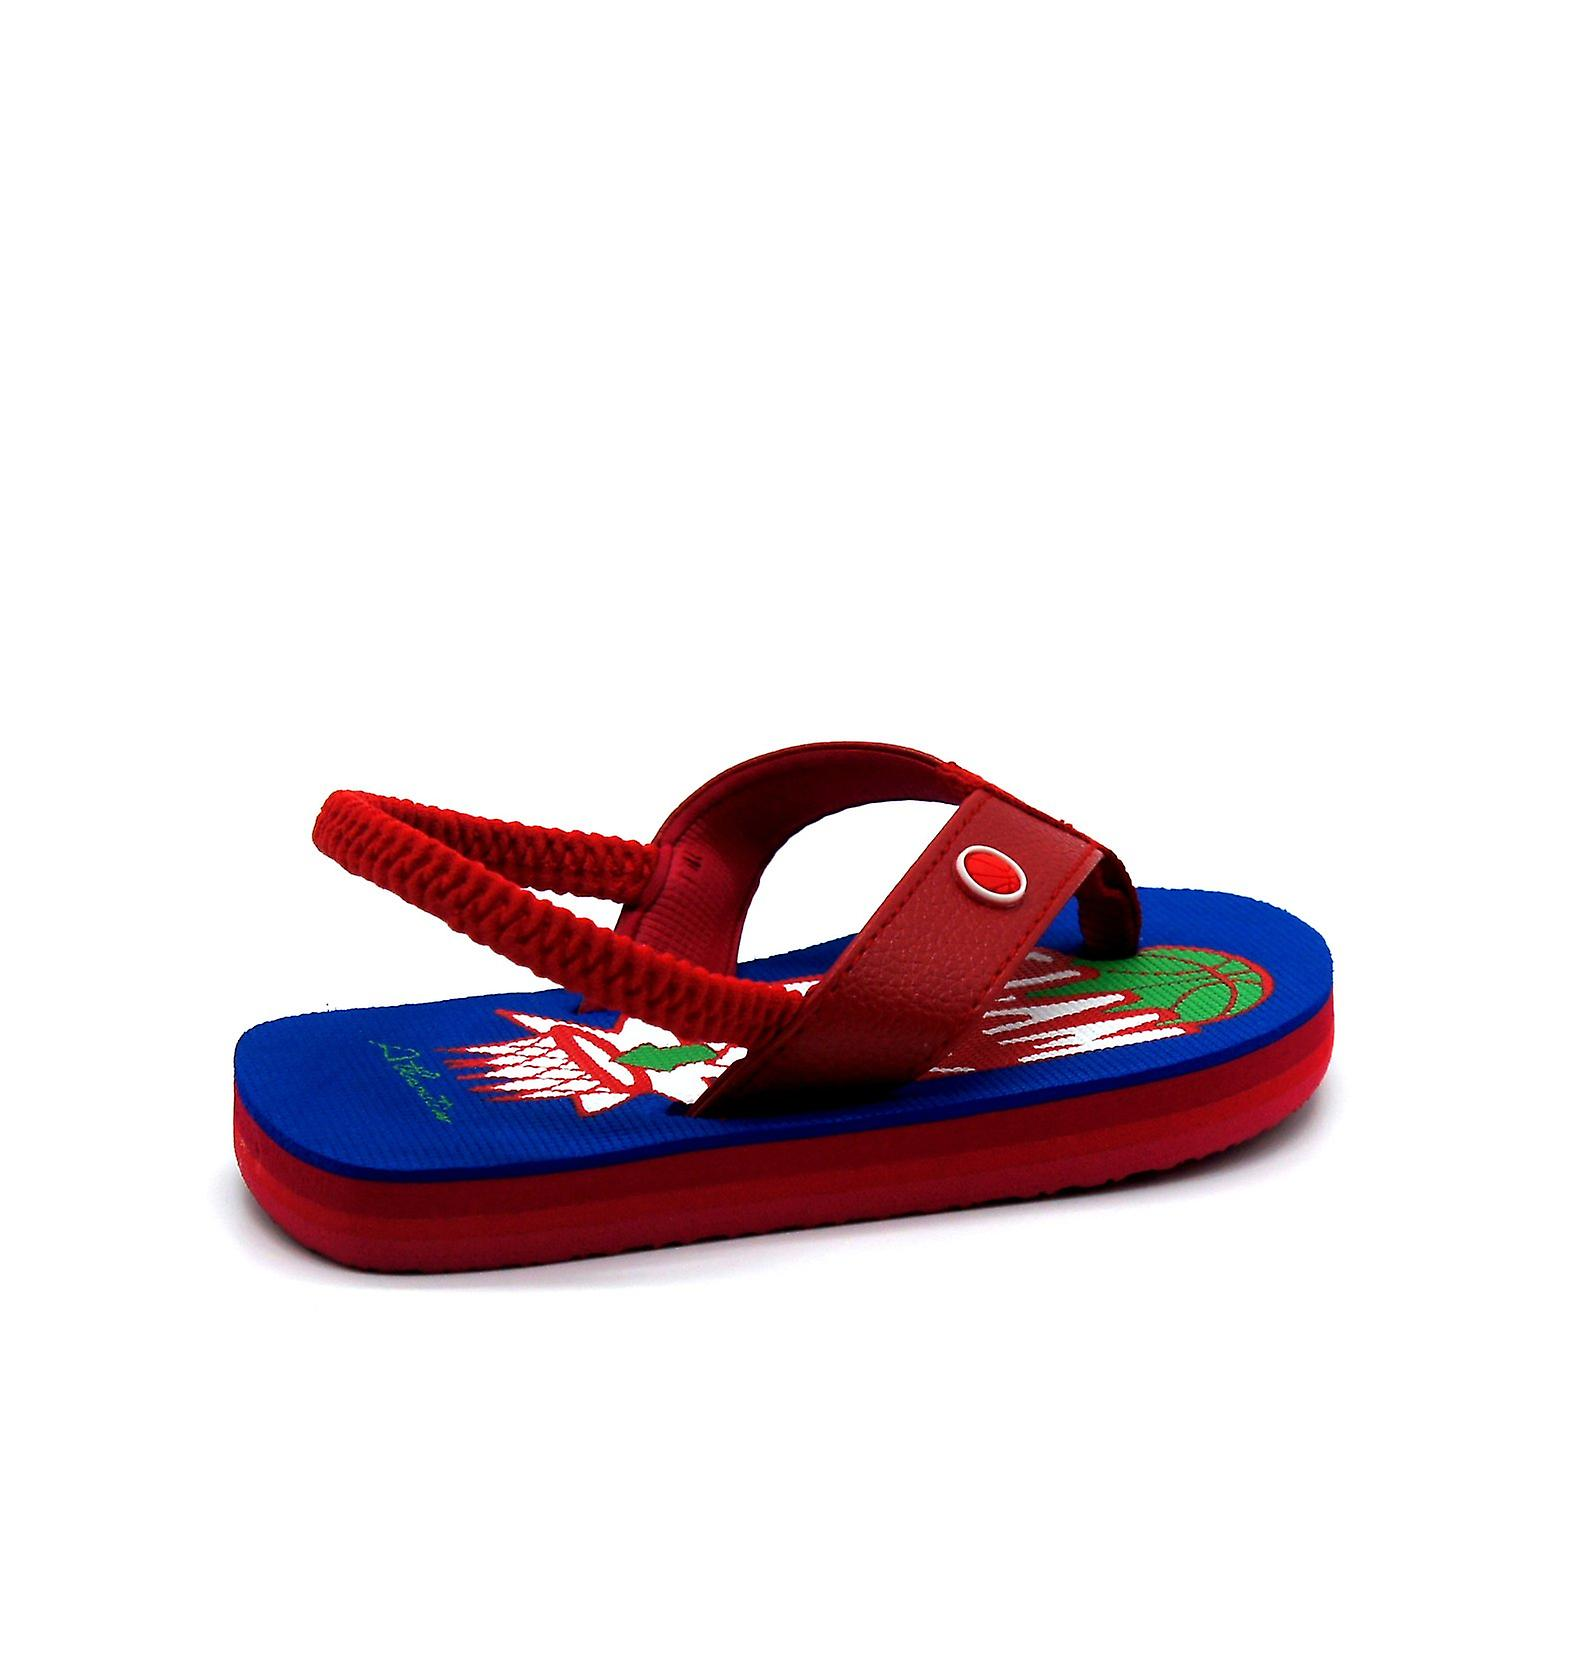 Atlantis Shoes Kids Supportive Cushioned Comfortable Sandals Flip Flops Slamdunk Red